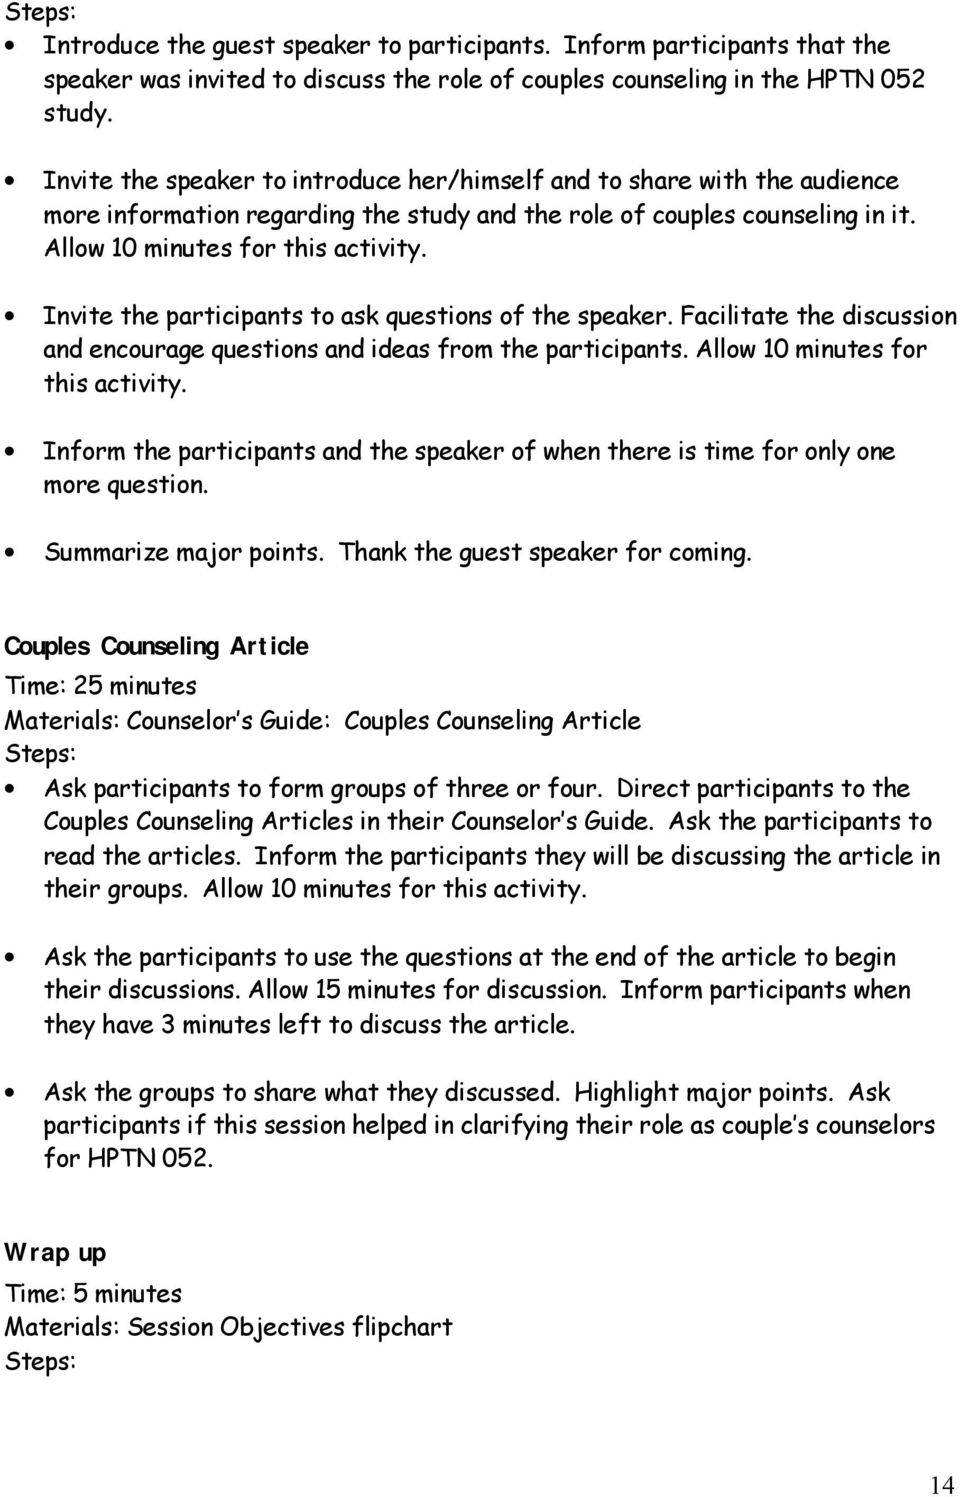 Invite the participants to ask questions of the speaker. Facilitate the discussion and encourage questions and ideas from the participants. Allow 10 minutes for this activity.